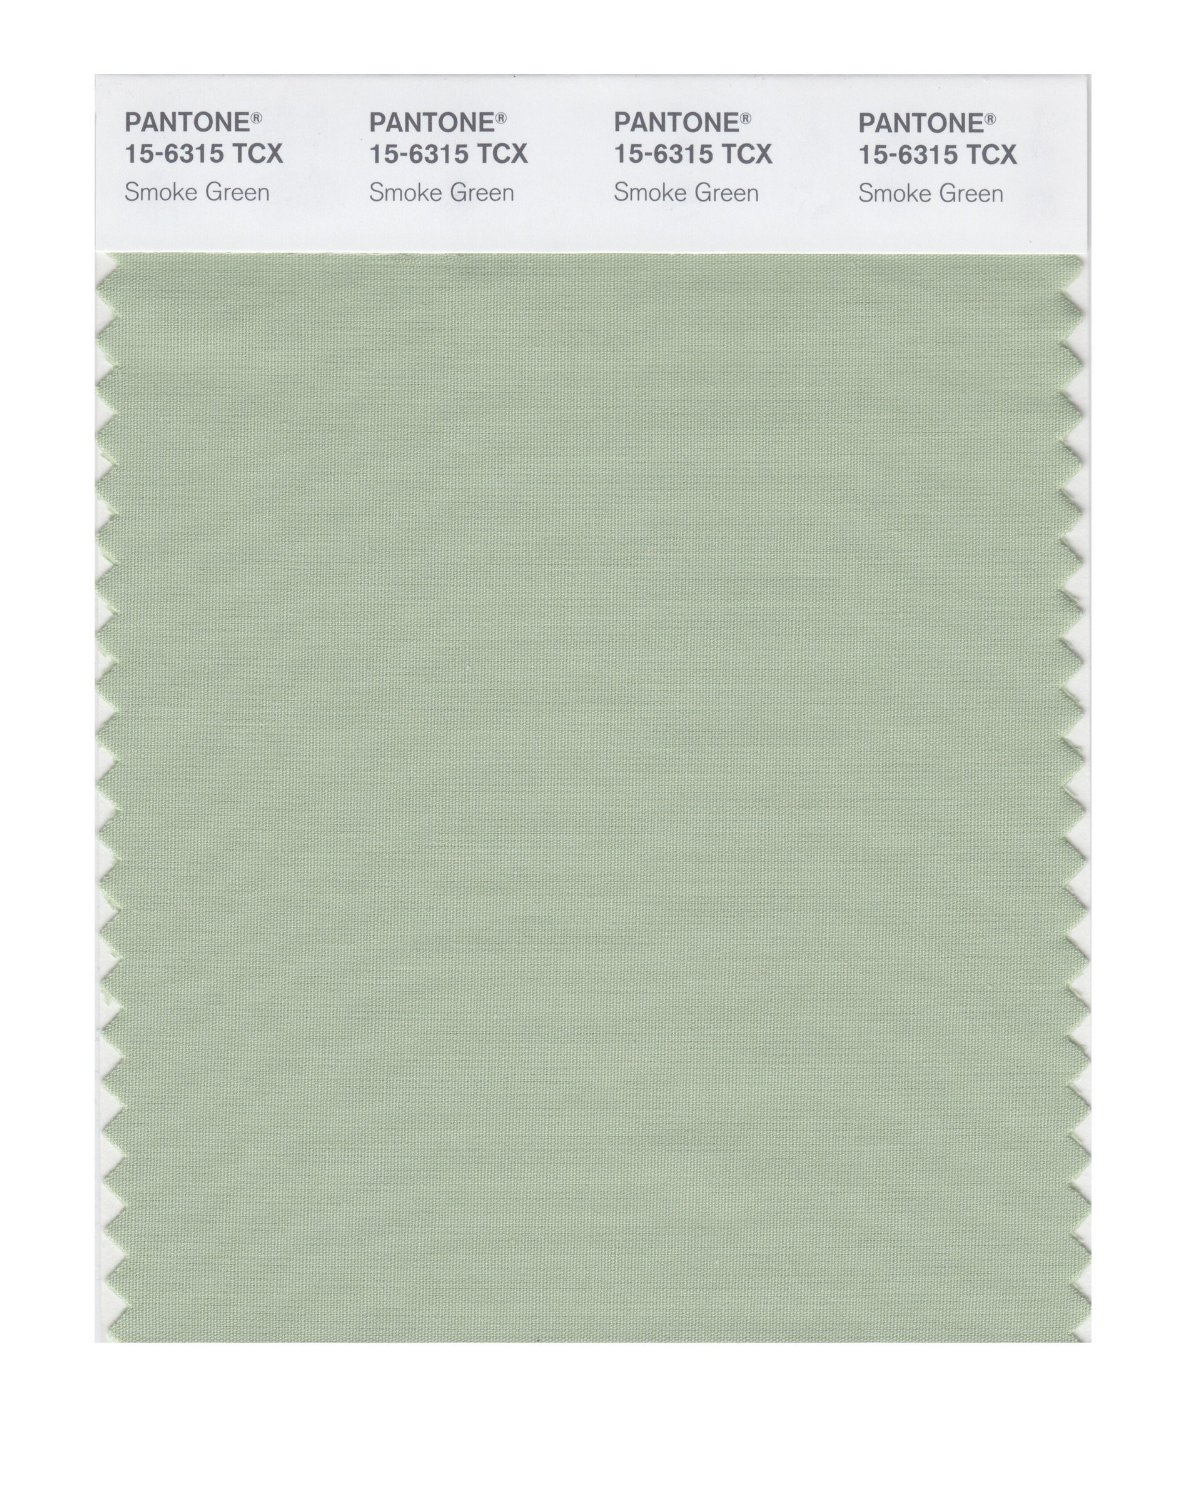 Pantone Smart Swatch 15-6315 Smoke Green